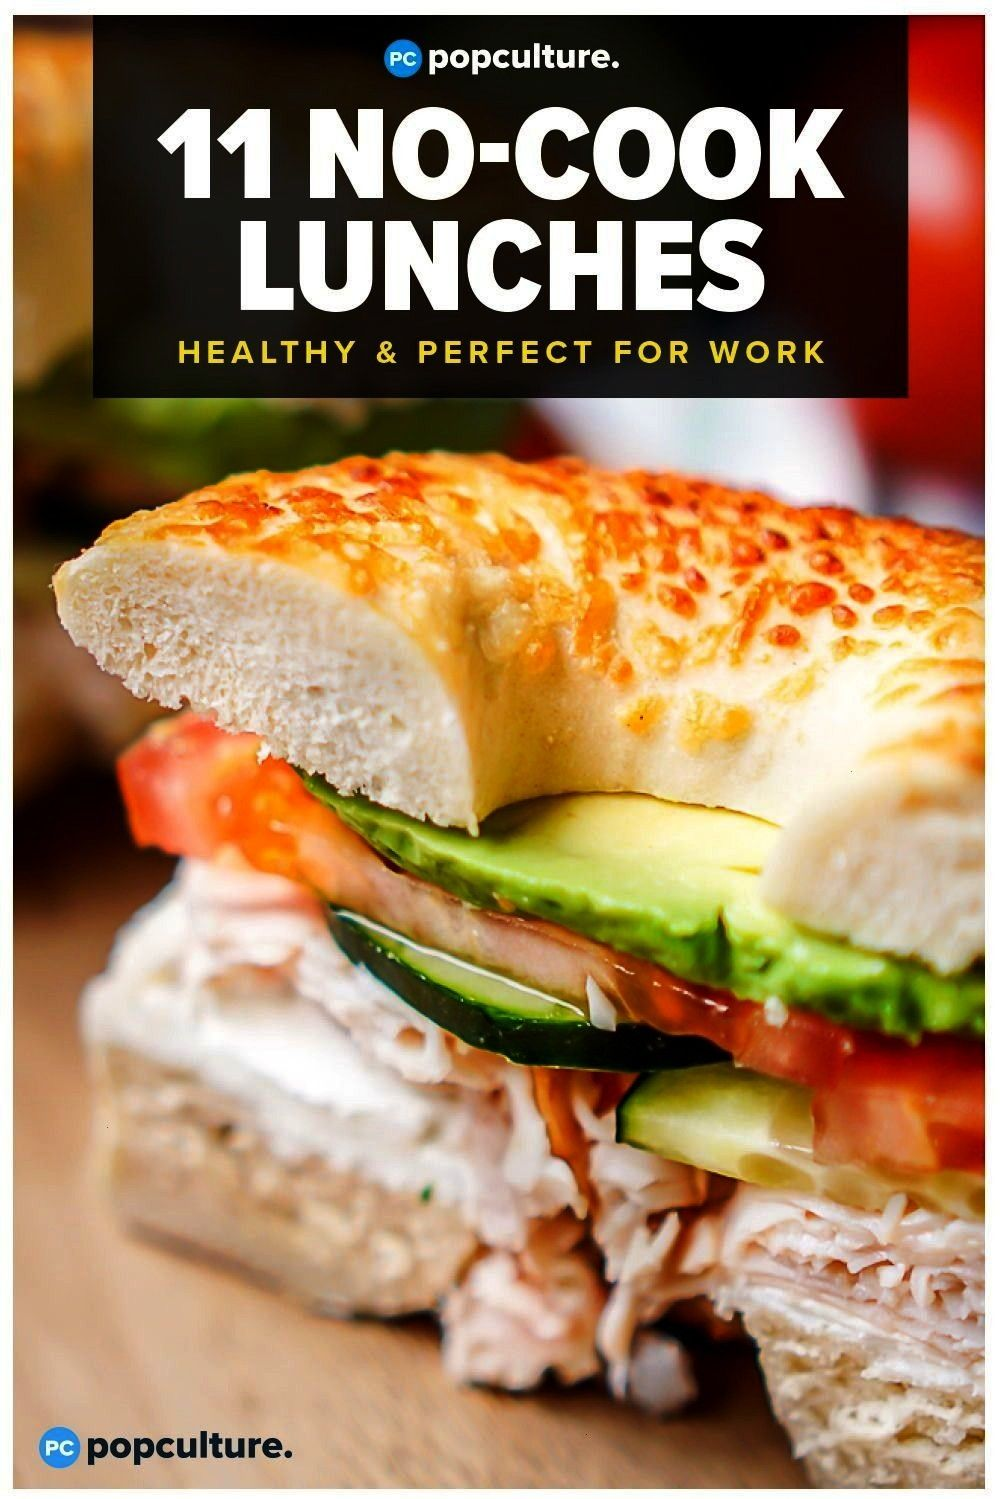 to be said for healthy lunch ideas that dont require much effort. These 11 easy recipes, from a VE